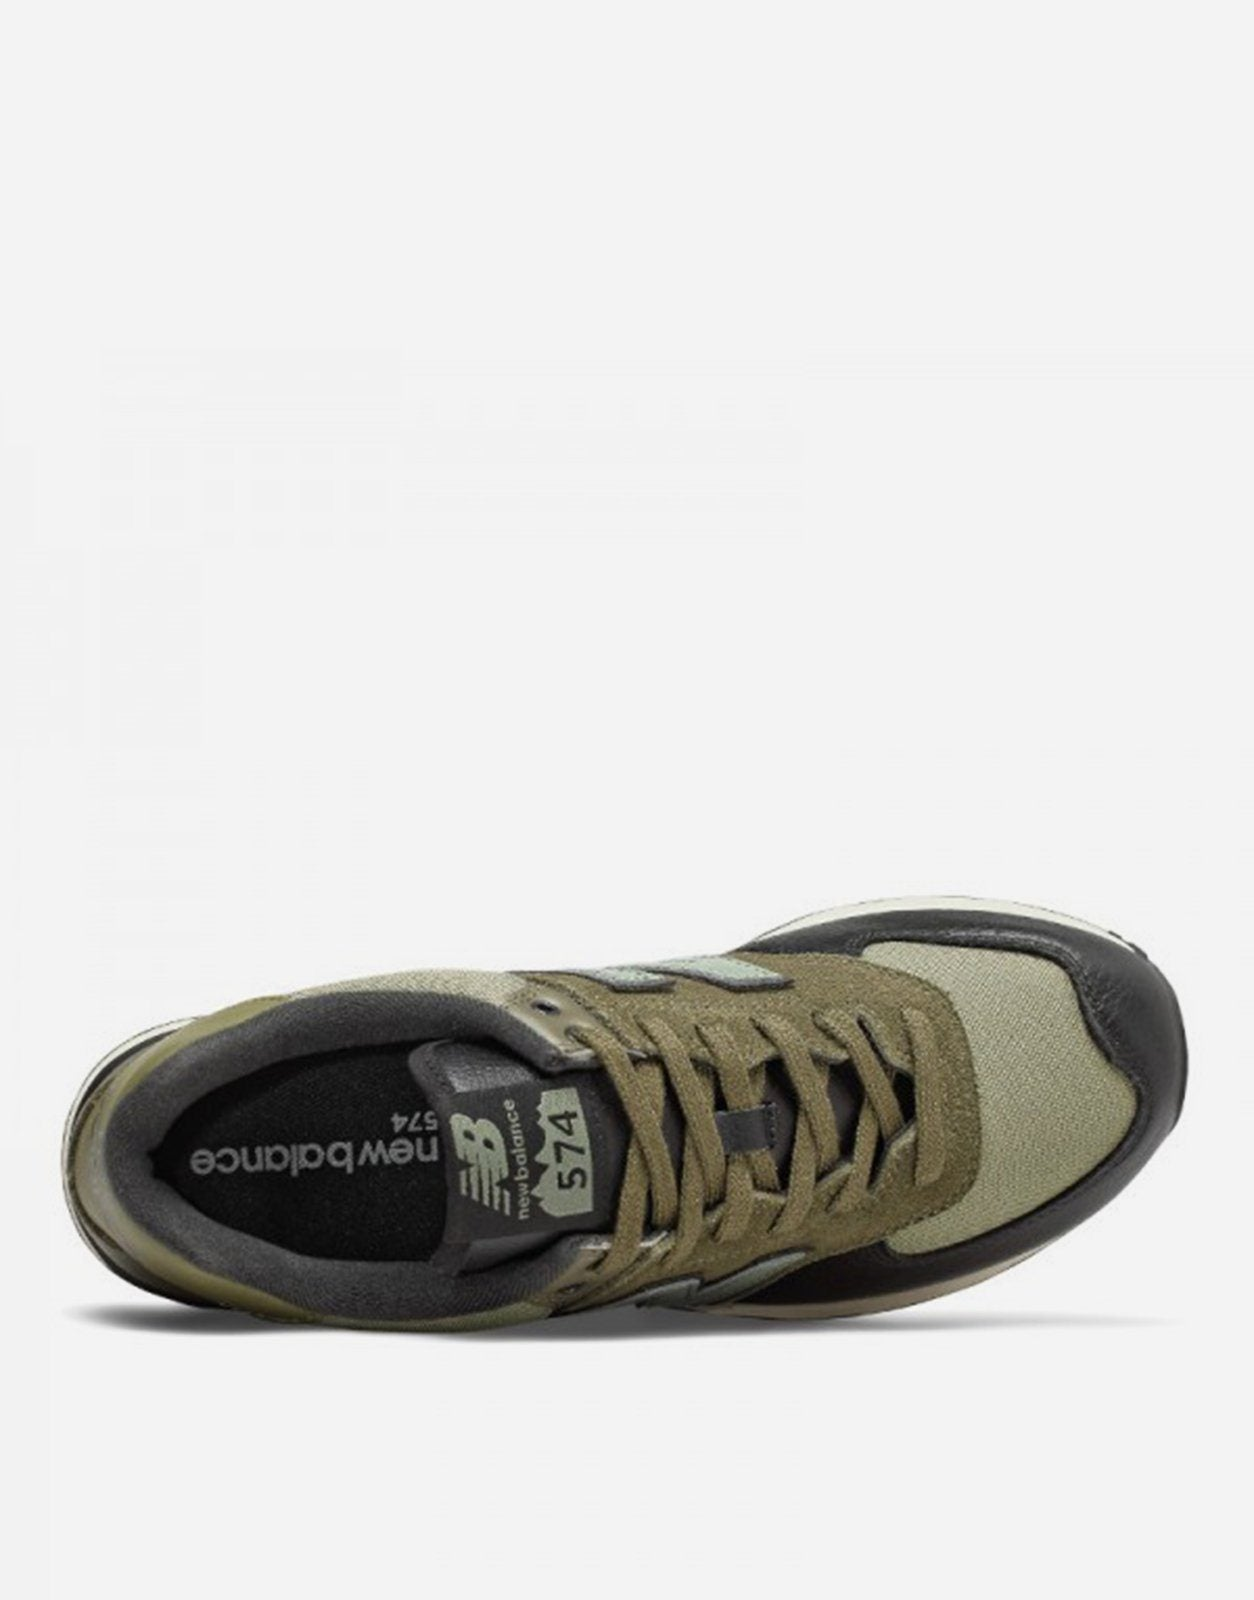 brand new c50af c7278 New Balance 574 Classic Outdoor Pack Sneaker